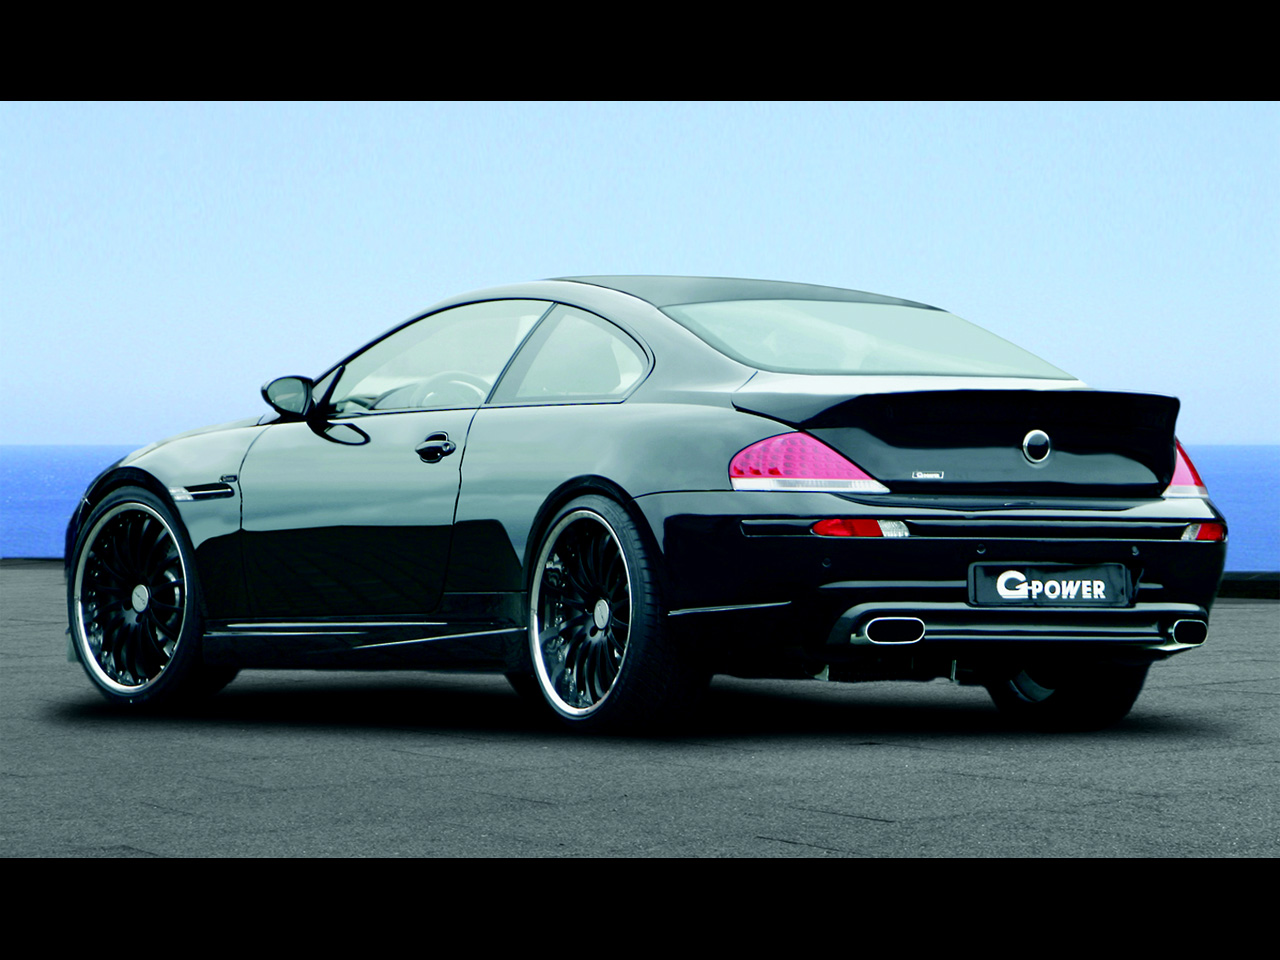 G Power Bmw G6 V10 Coupe E63 Photos Photogallery With